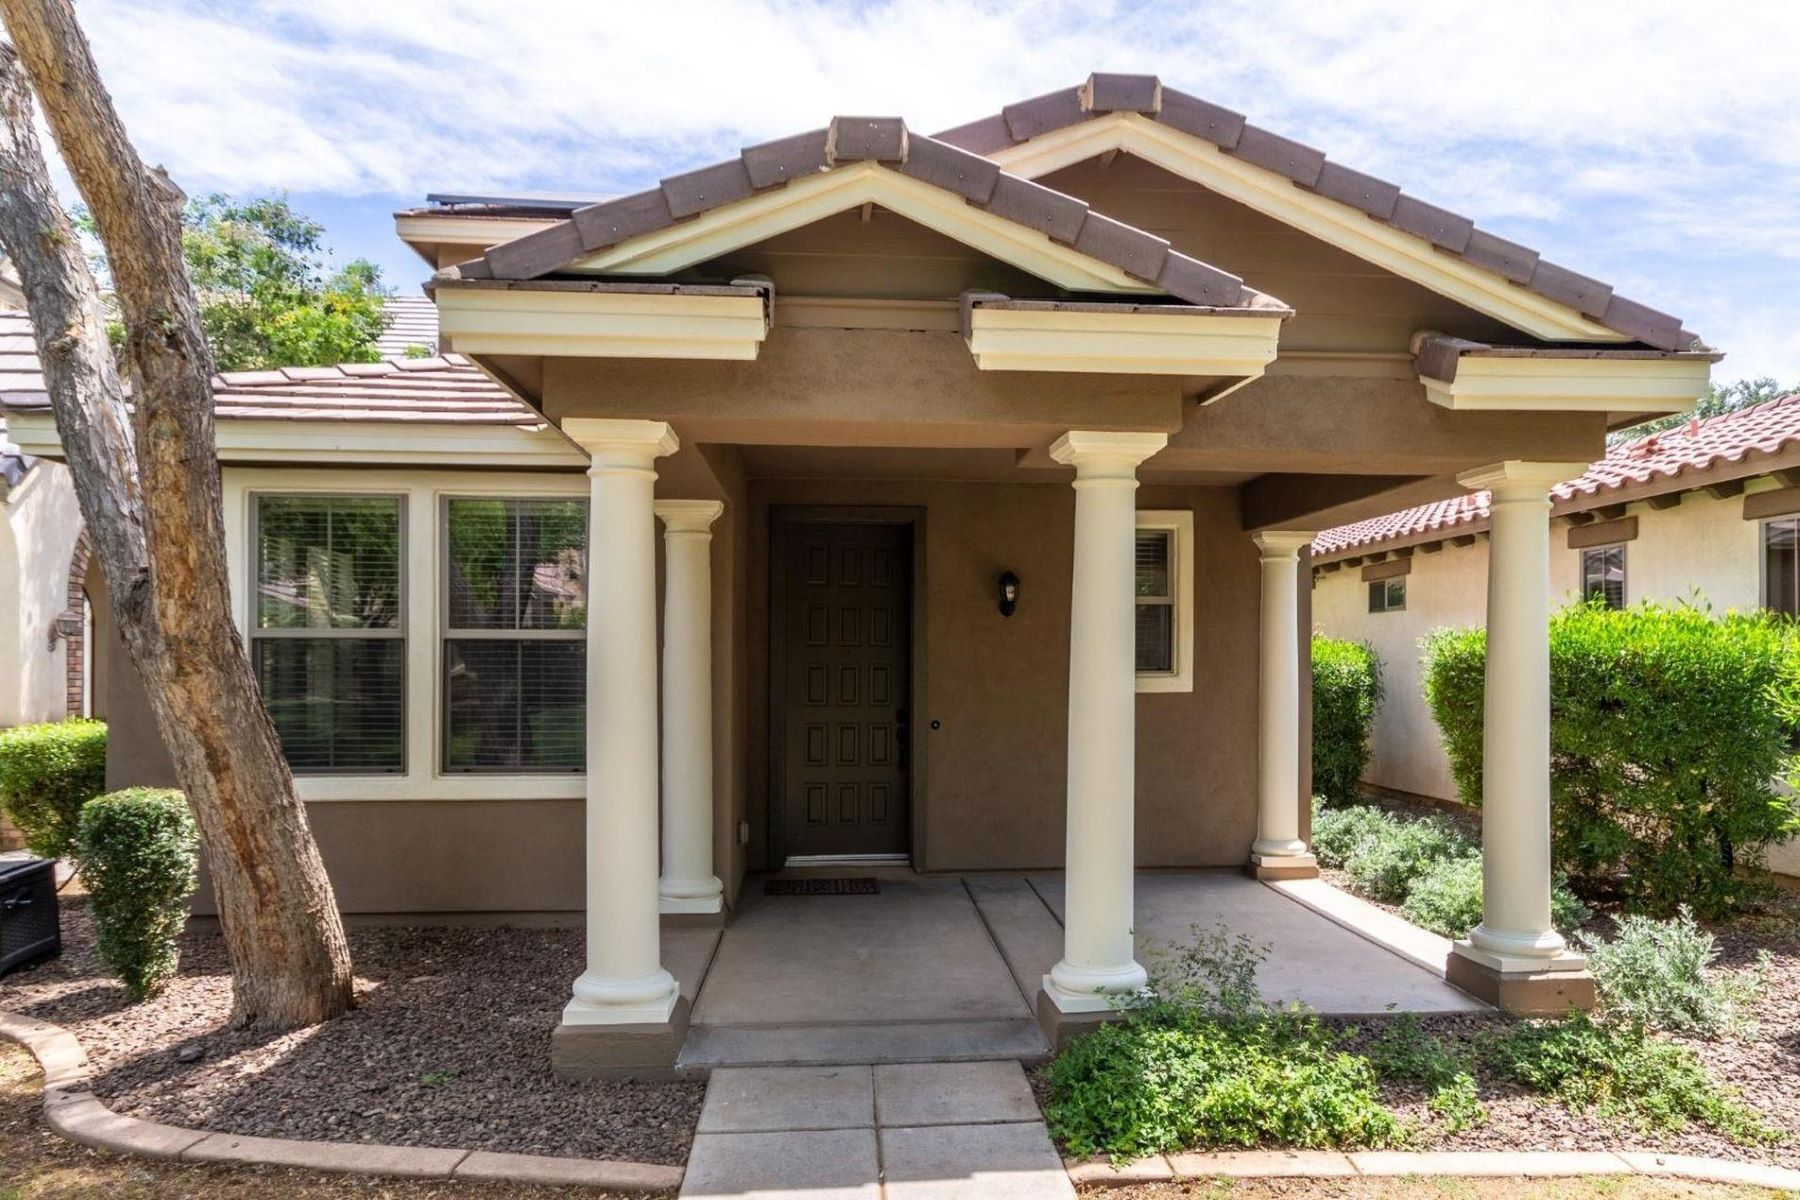 Single Family Homes for Sale at Marley Park 15433 W DREYFUS ST Surprise, Arizona 85379 United States